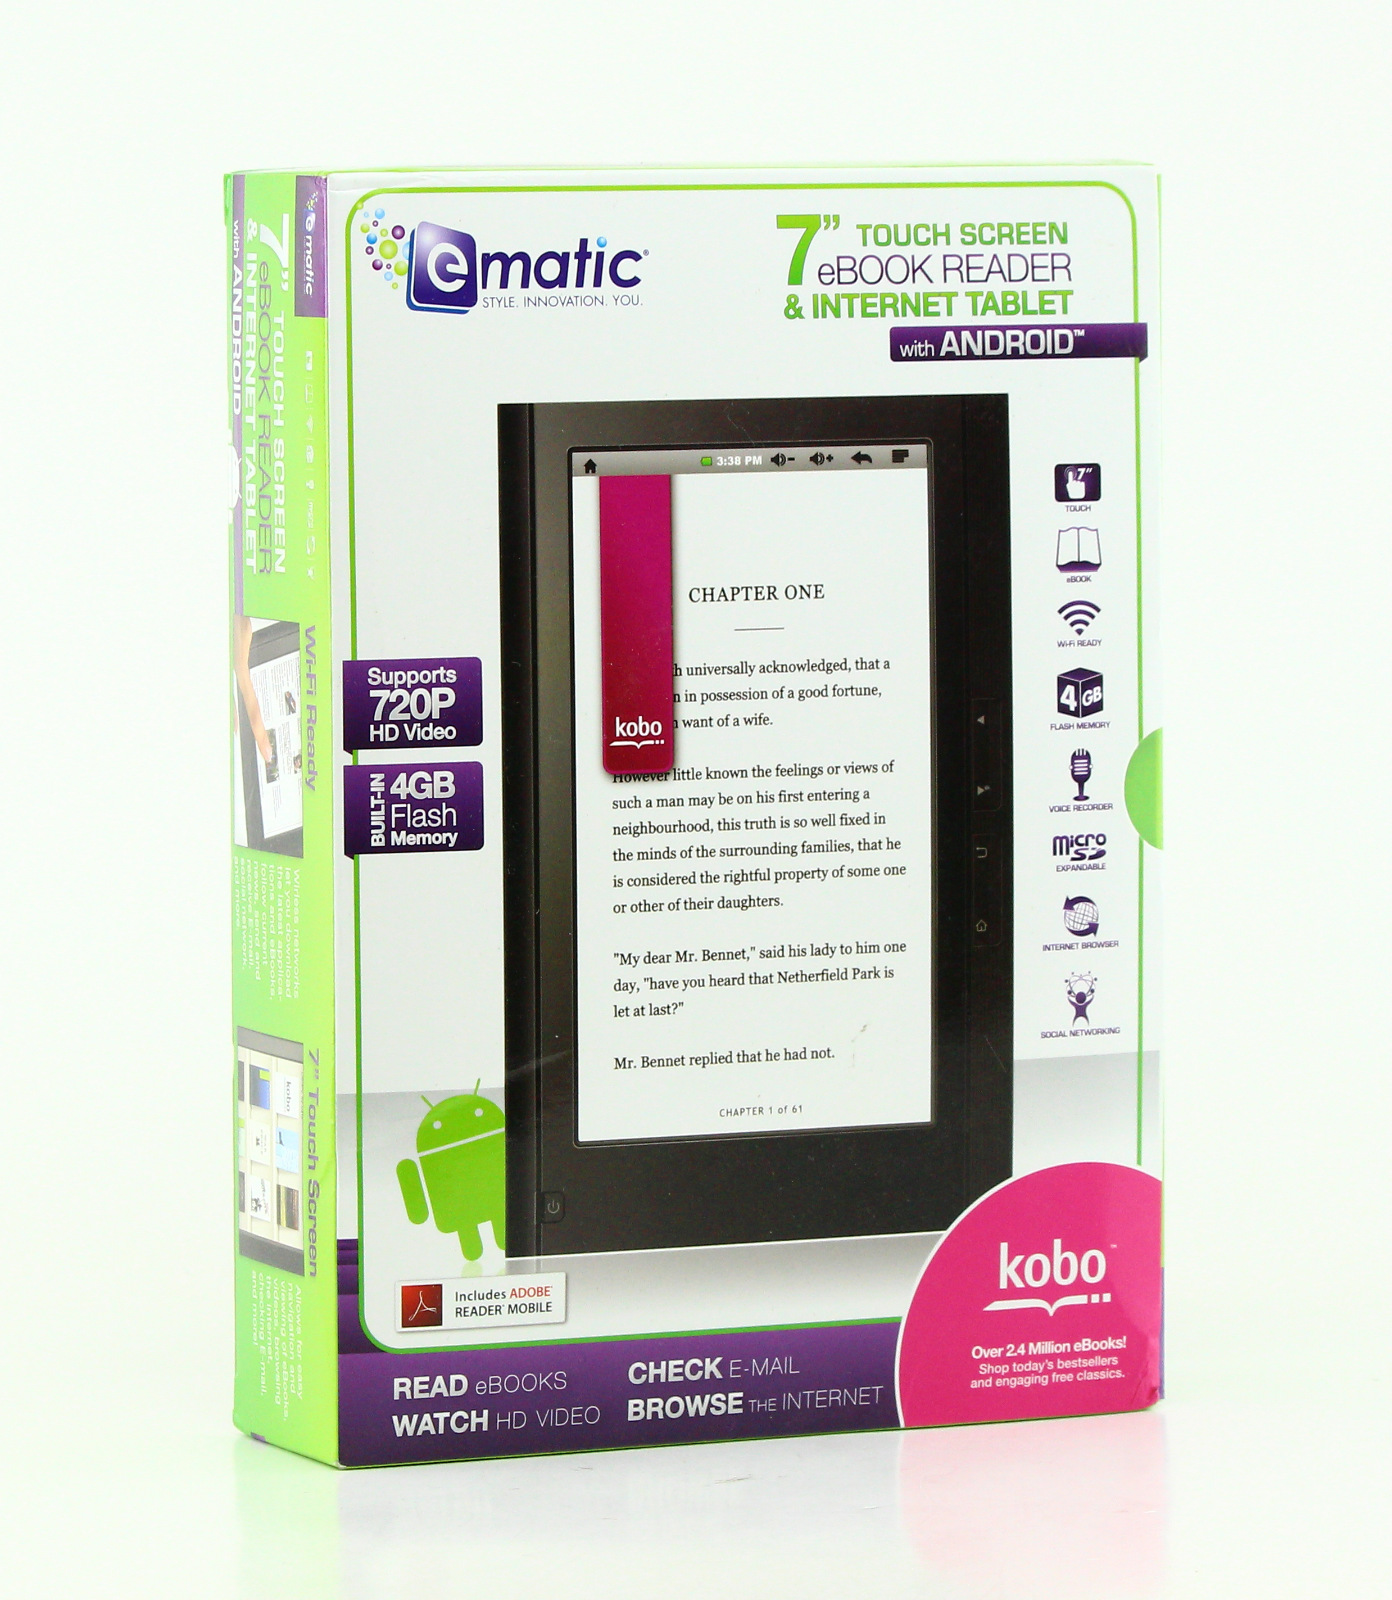 ematic 7 034 4gb touch screen android ebook reader and wifi internet tablet ebw204b ebay. Black Bedroom Furniture Sets. Home Design Ideas